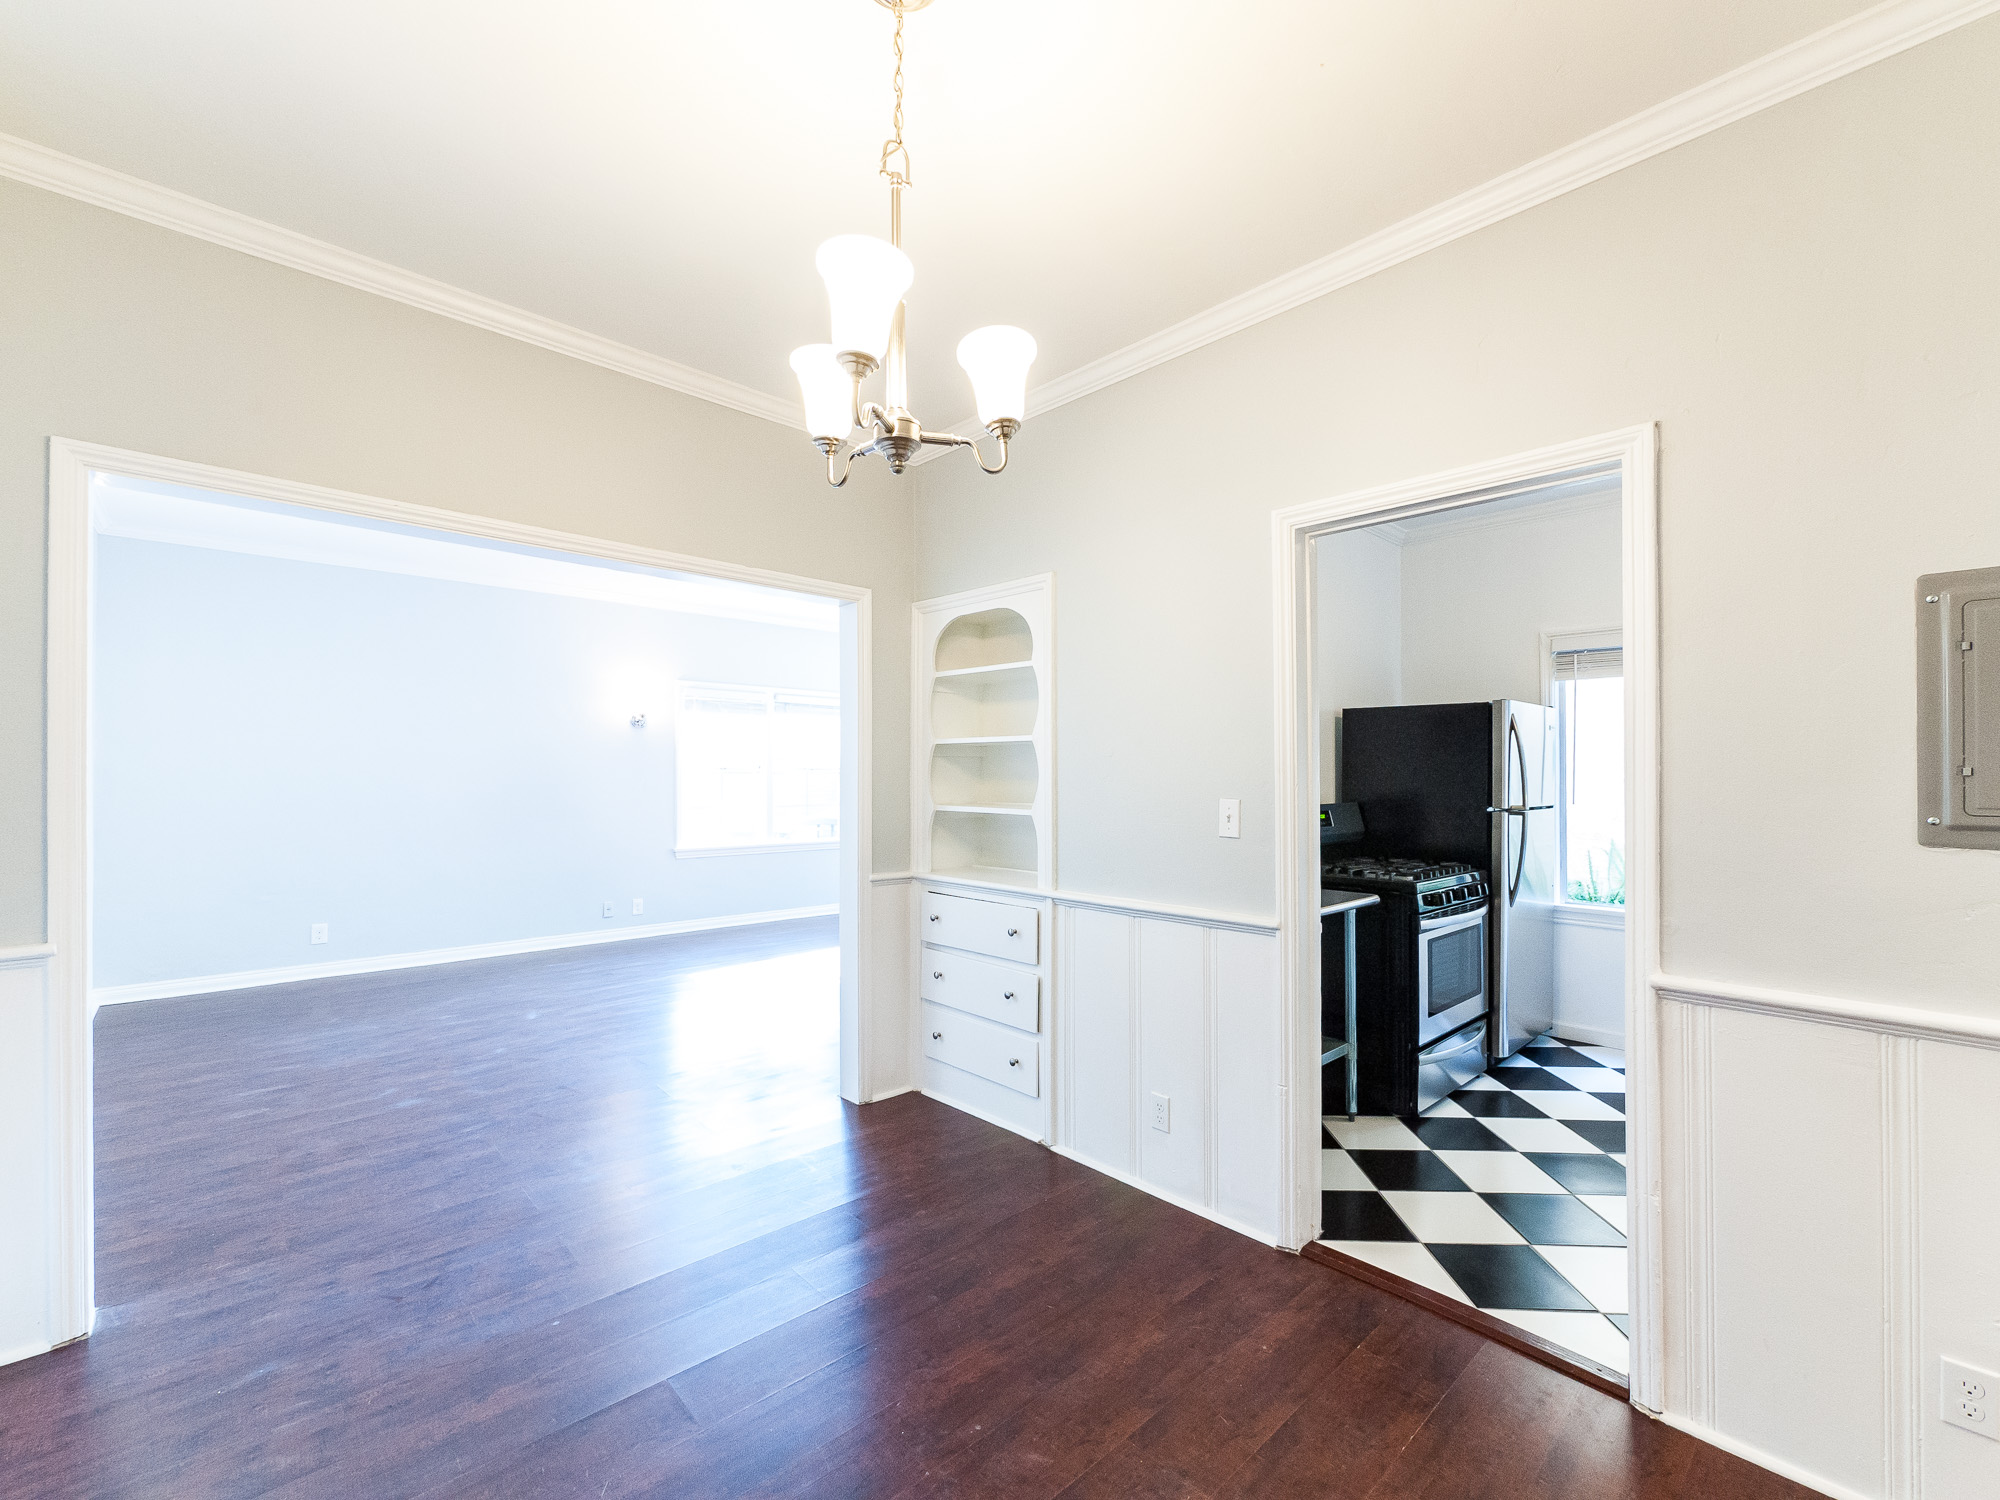 Tastefully Remodeled Wrigley Apt |Original Charm fused with Modern Fixtures Throughout | Onsite Laundry | Minutes from DTLB!